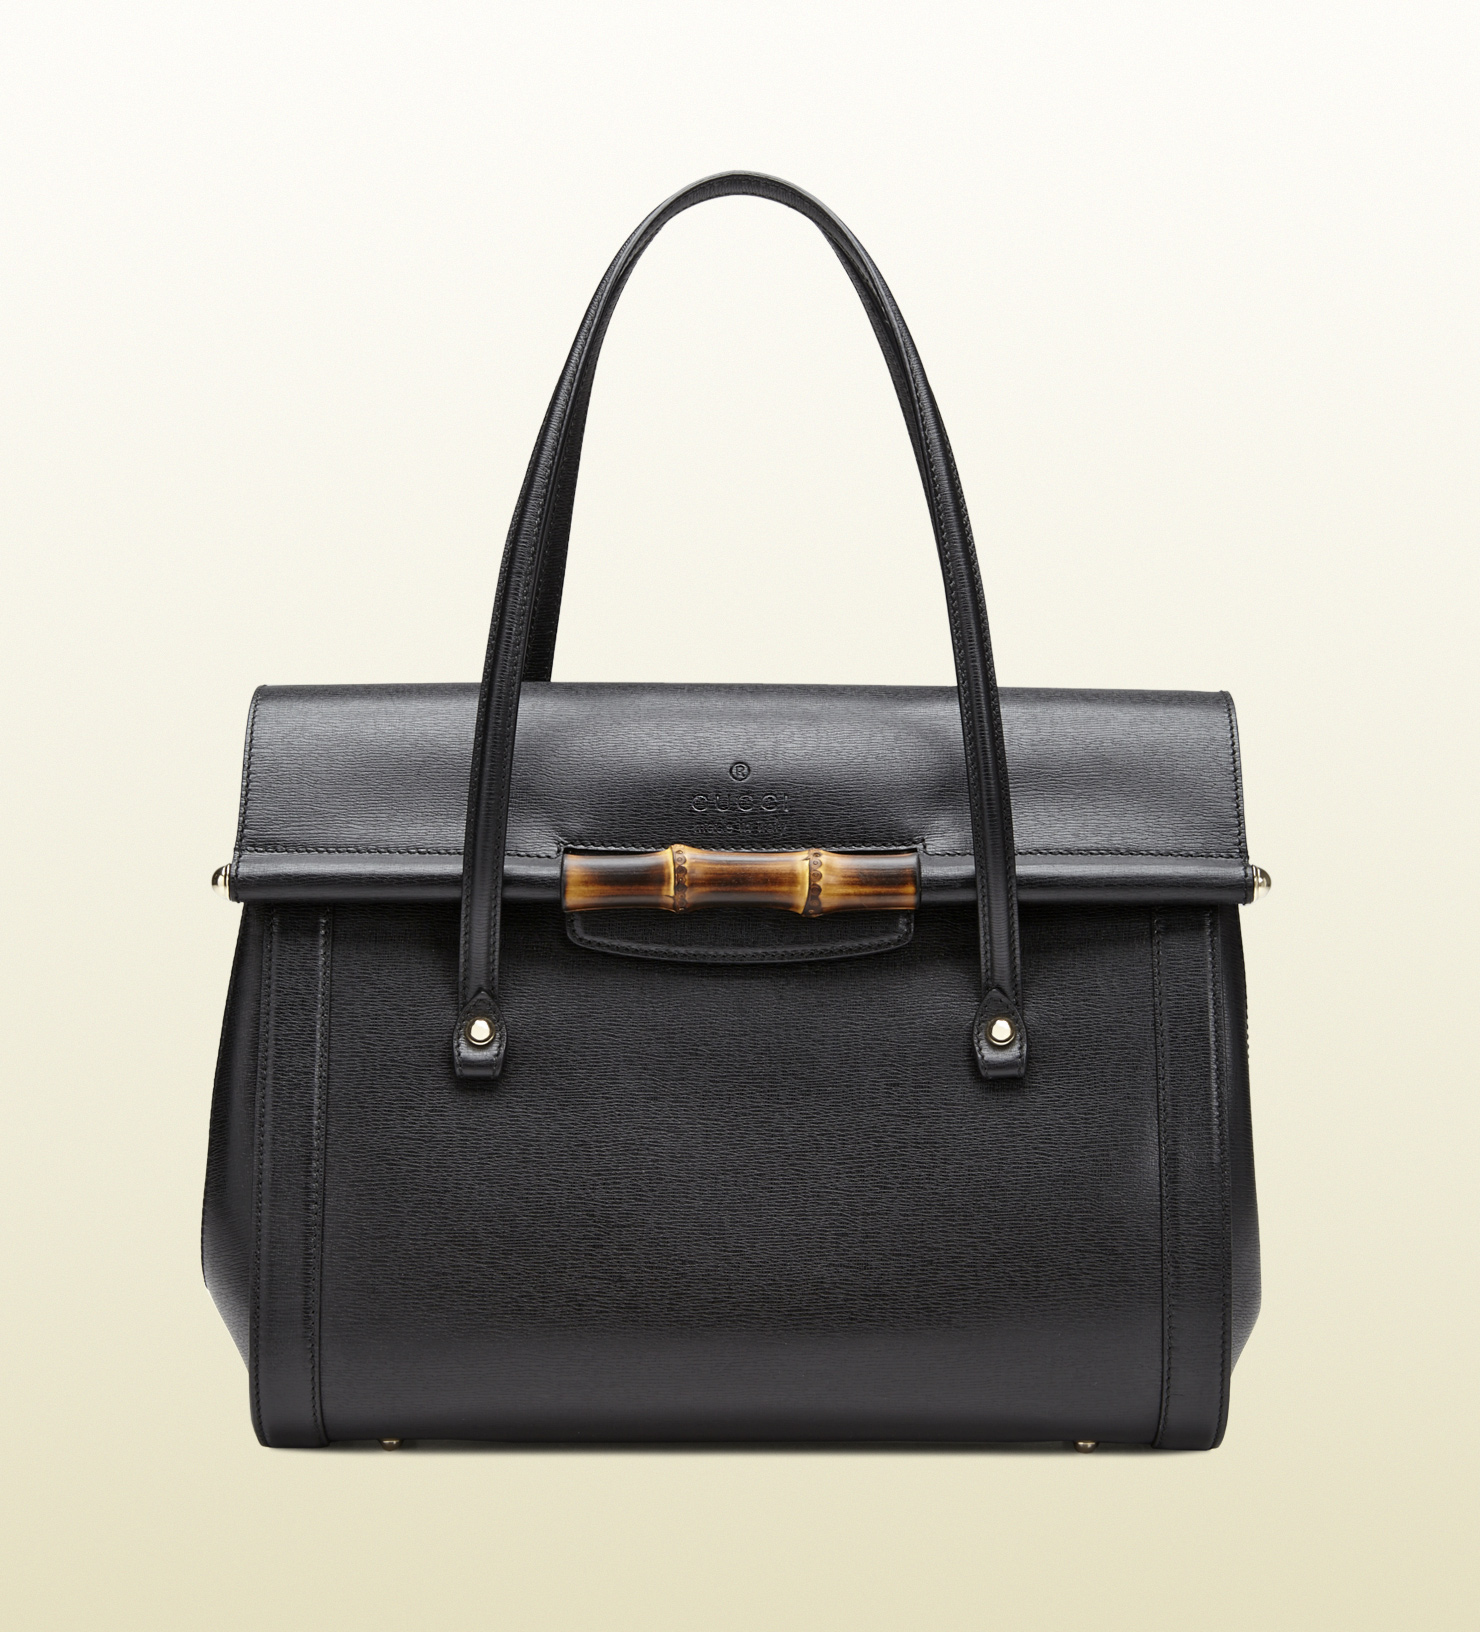 Gucci Bamboo Leather Top Handle Bag In Black Lyst